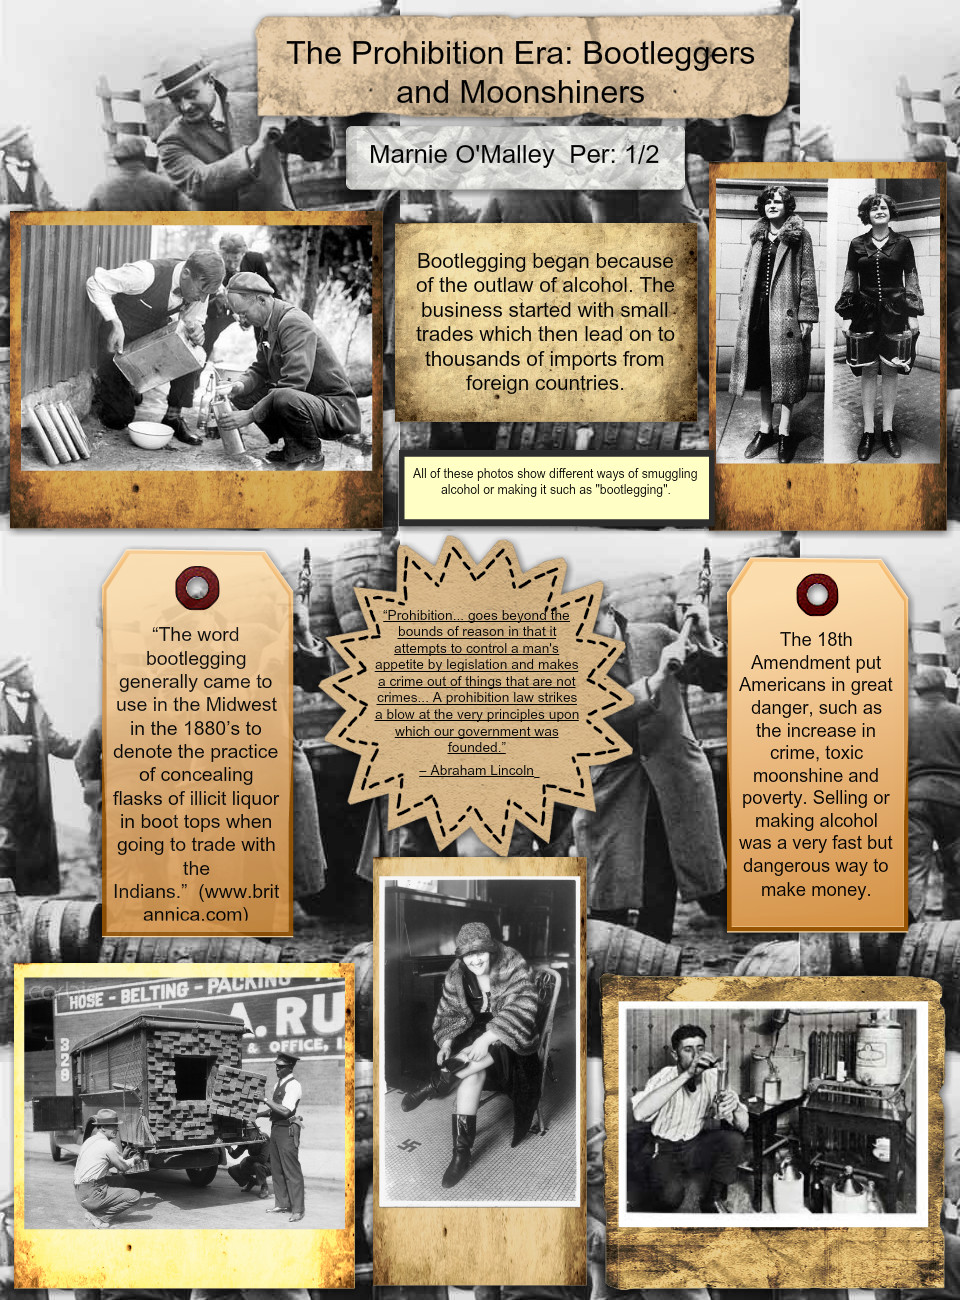 The Prohibition Era: Bootleggers and Moonshiners